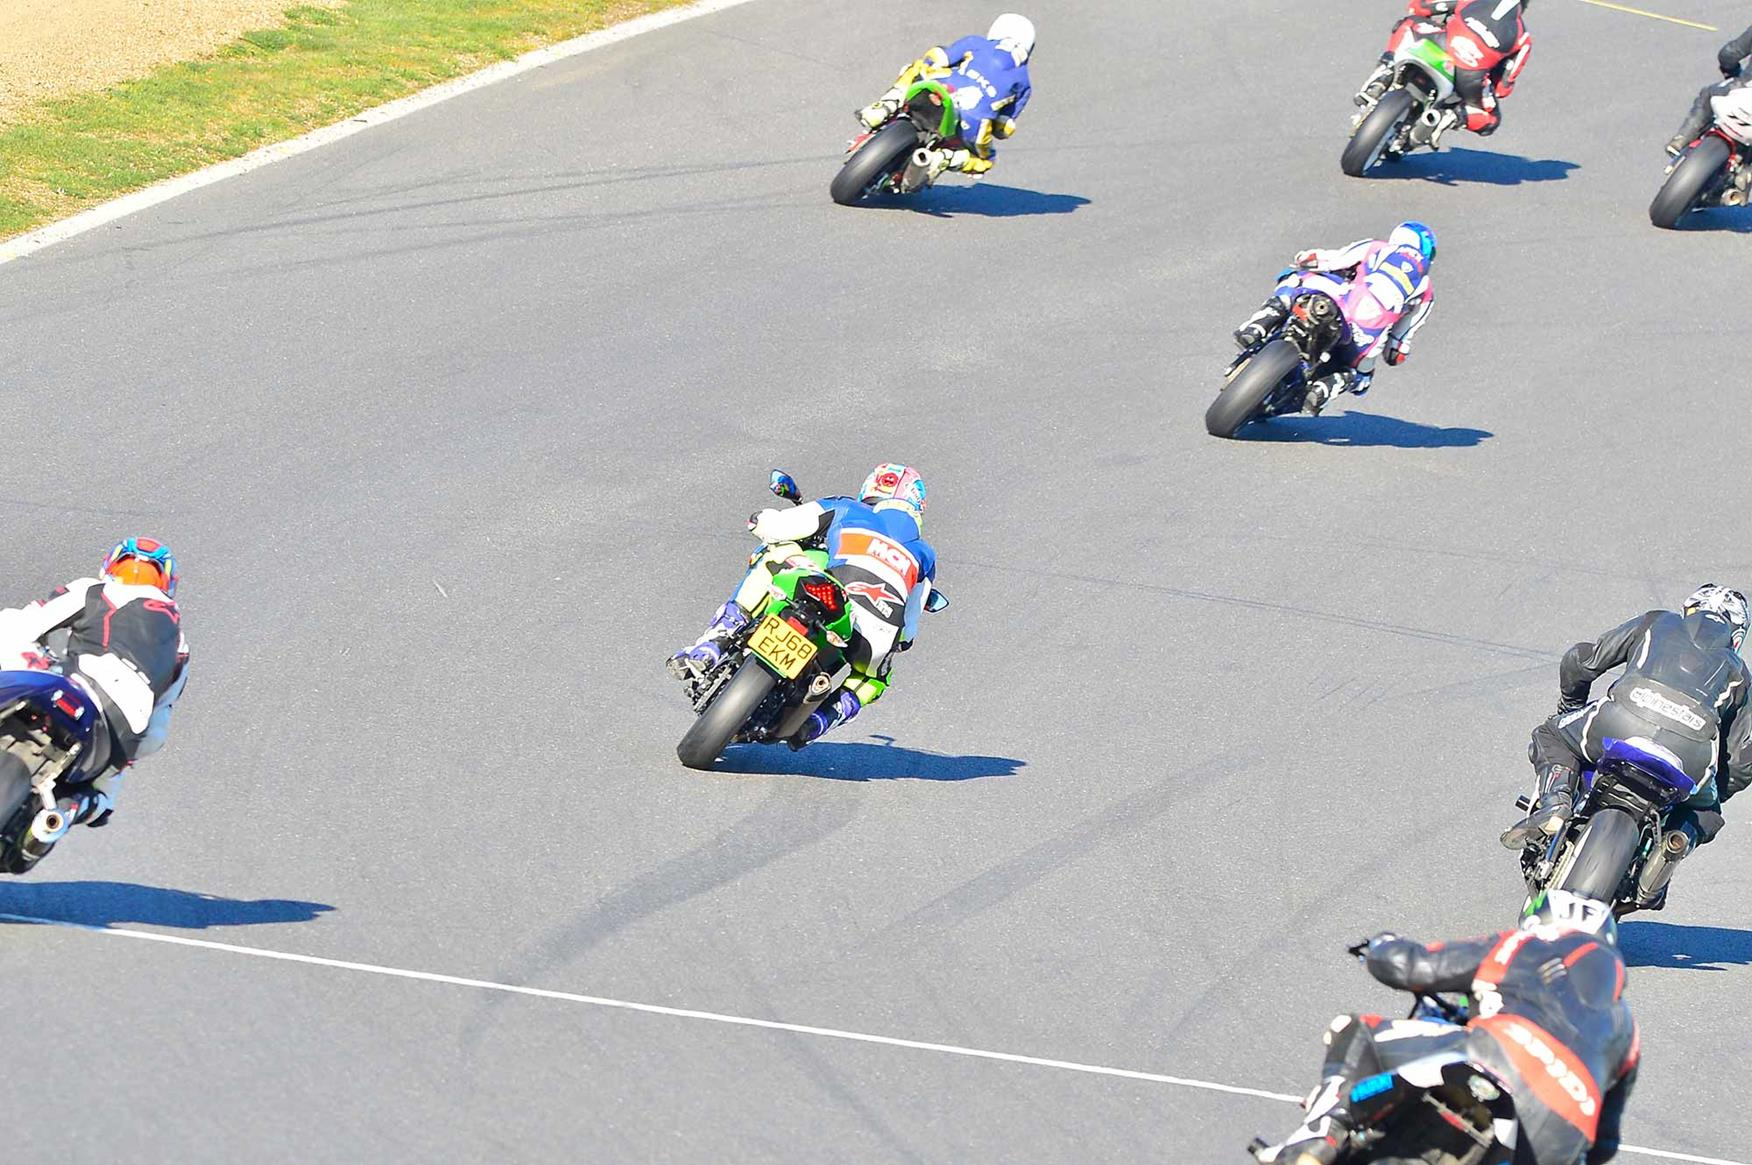 MCN's Michael Neeves in a sea of trackday machines